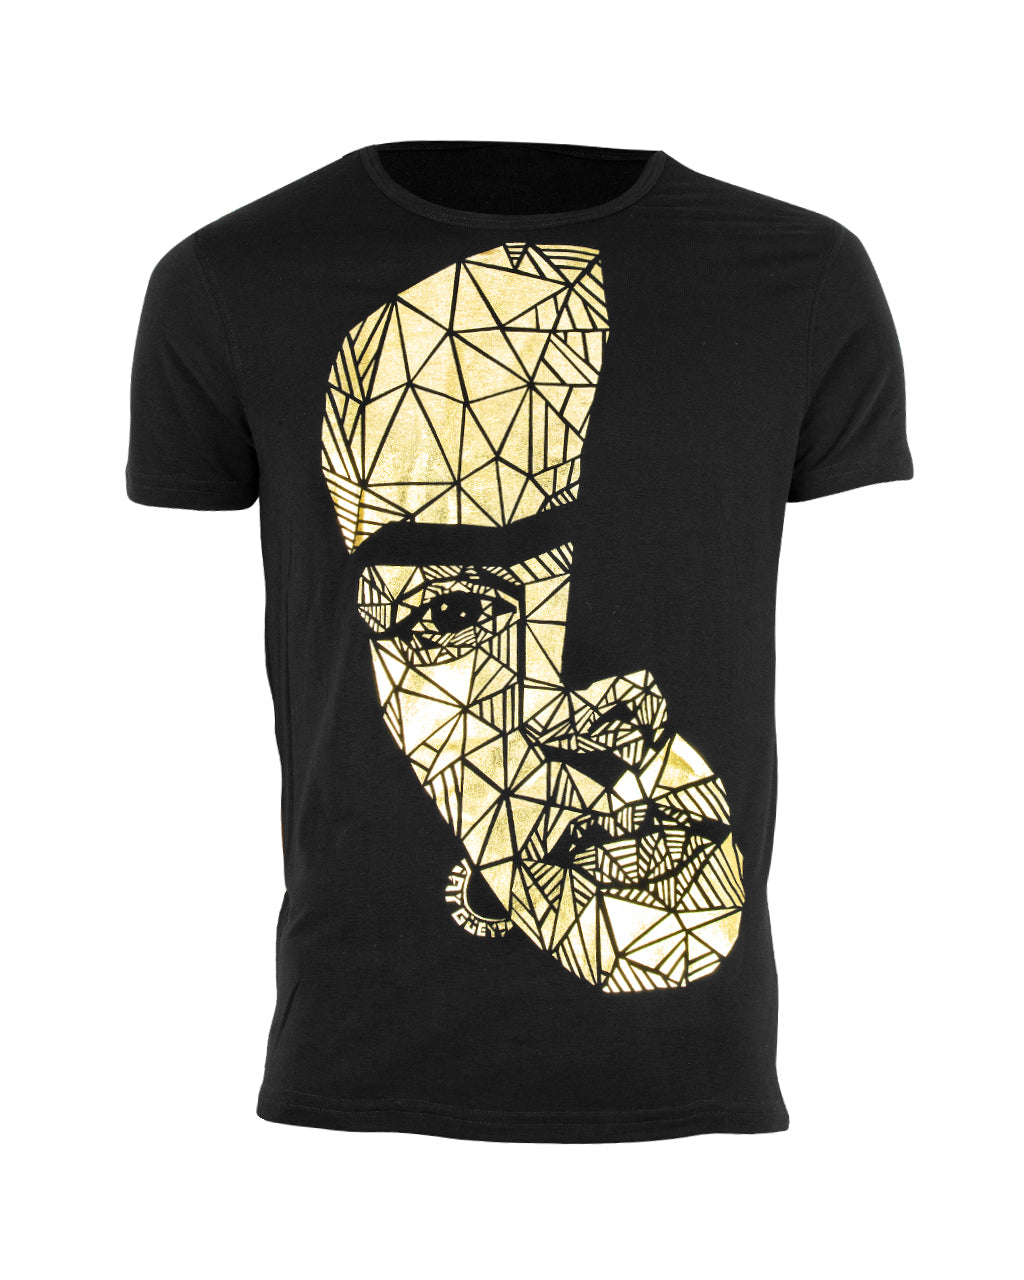 FRIDA ORO (MEN) - T-Shirt Men - ¡Ay Güey! USA